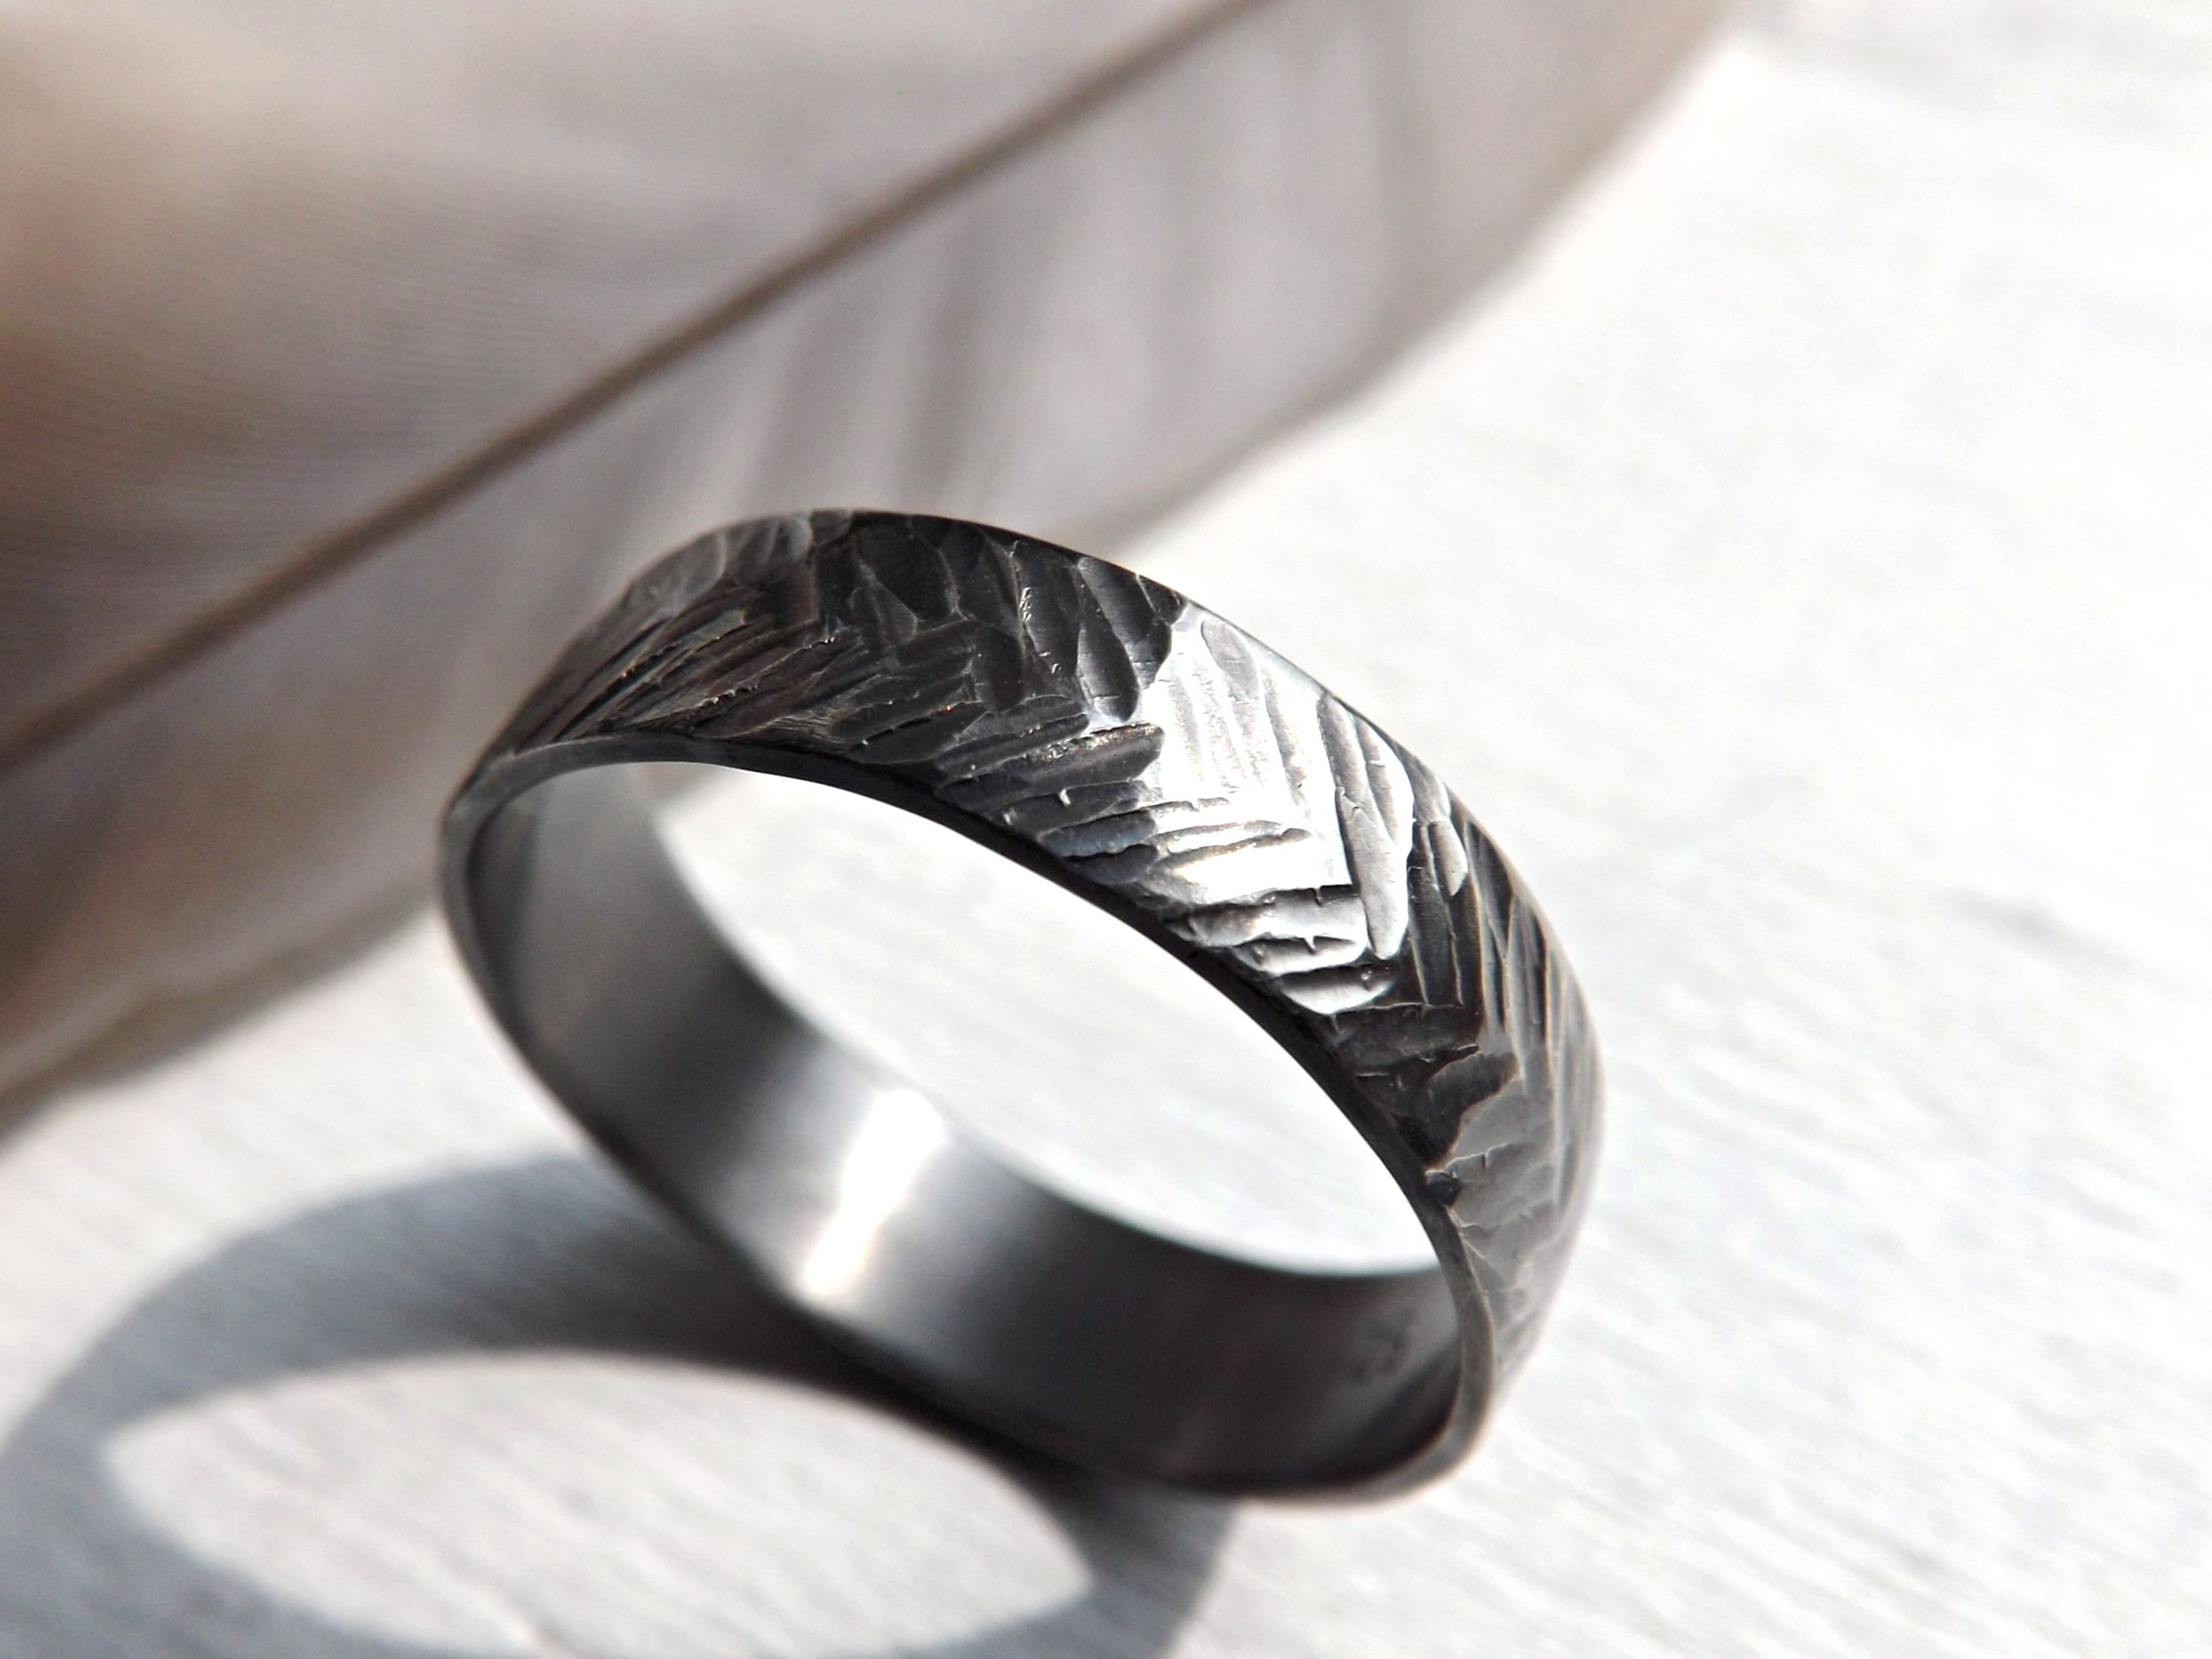 Buy a handmade chevron wedding ring silver sterling silver ring custom made chevron wedding ring silver sterling silver ring herringbone pattern unique mens wedding junglespirit Choice Image